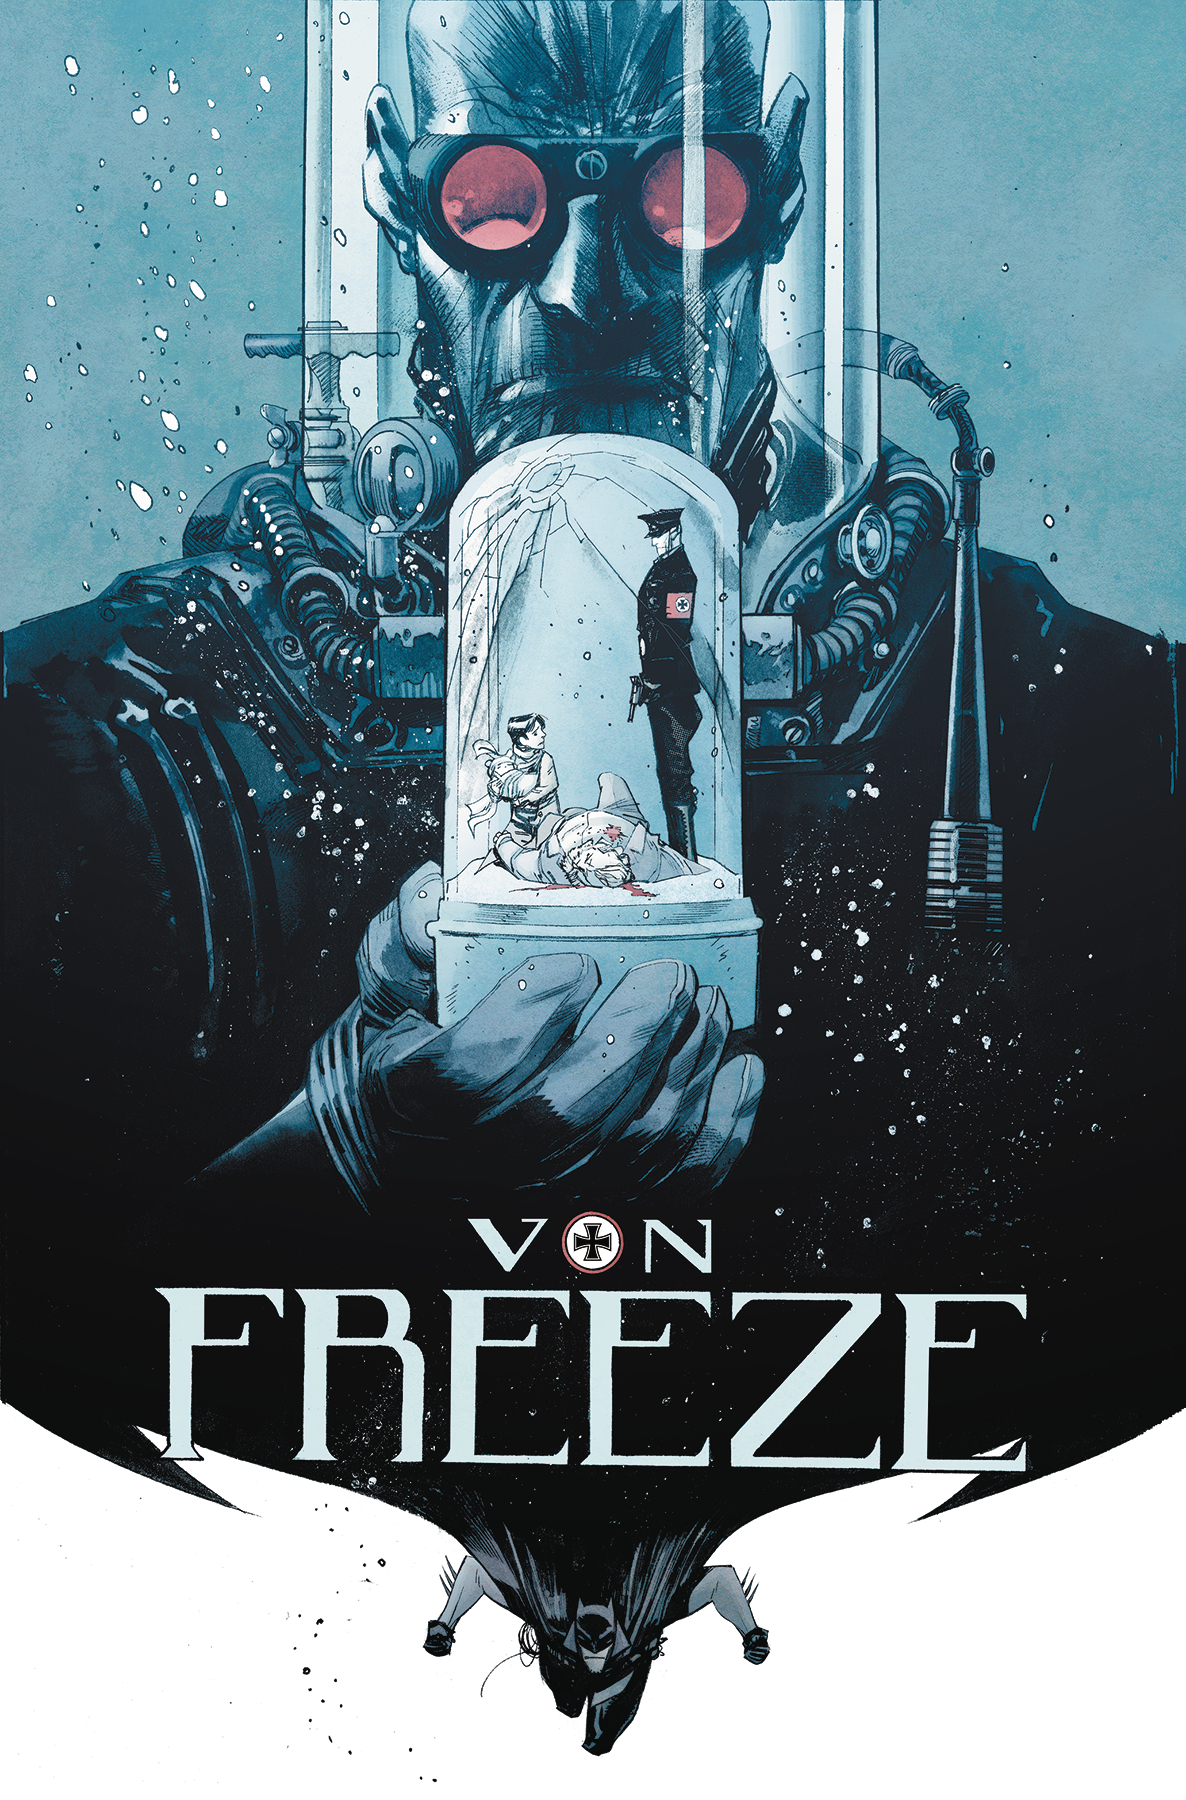 Image result for batman white knight von freeze""